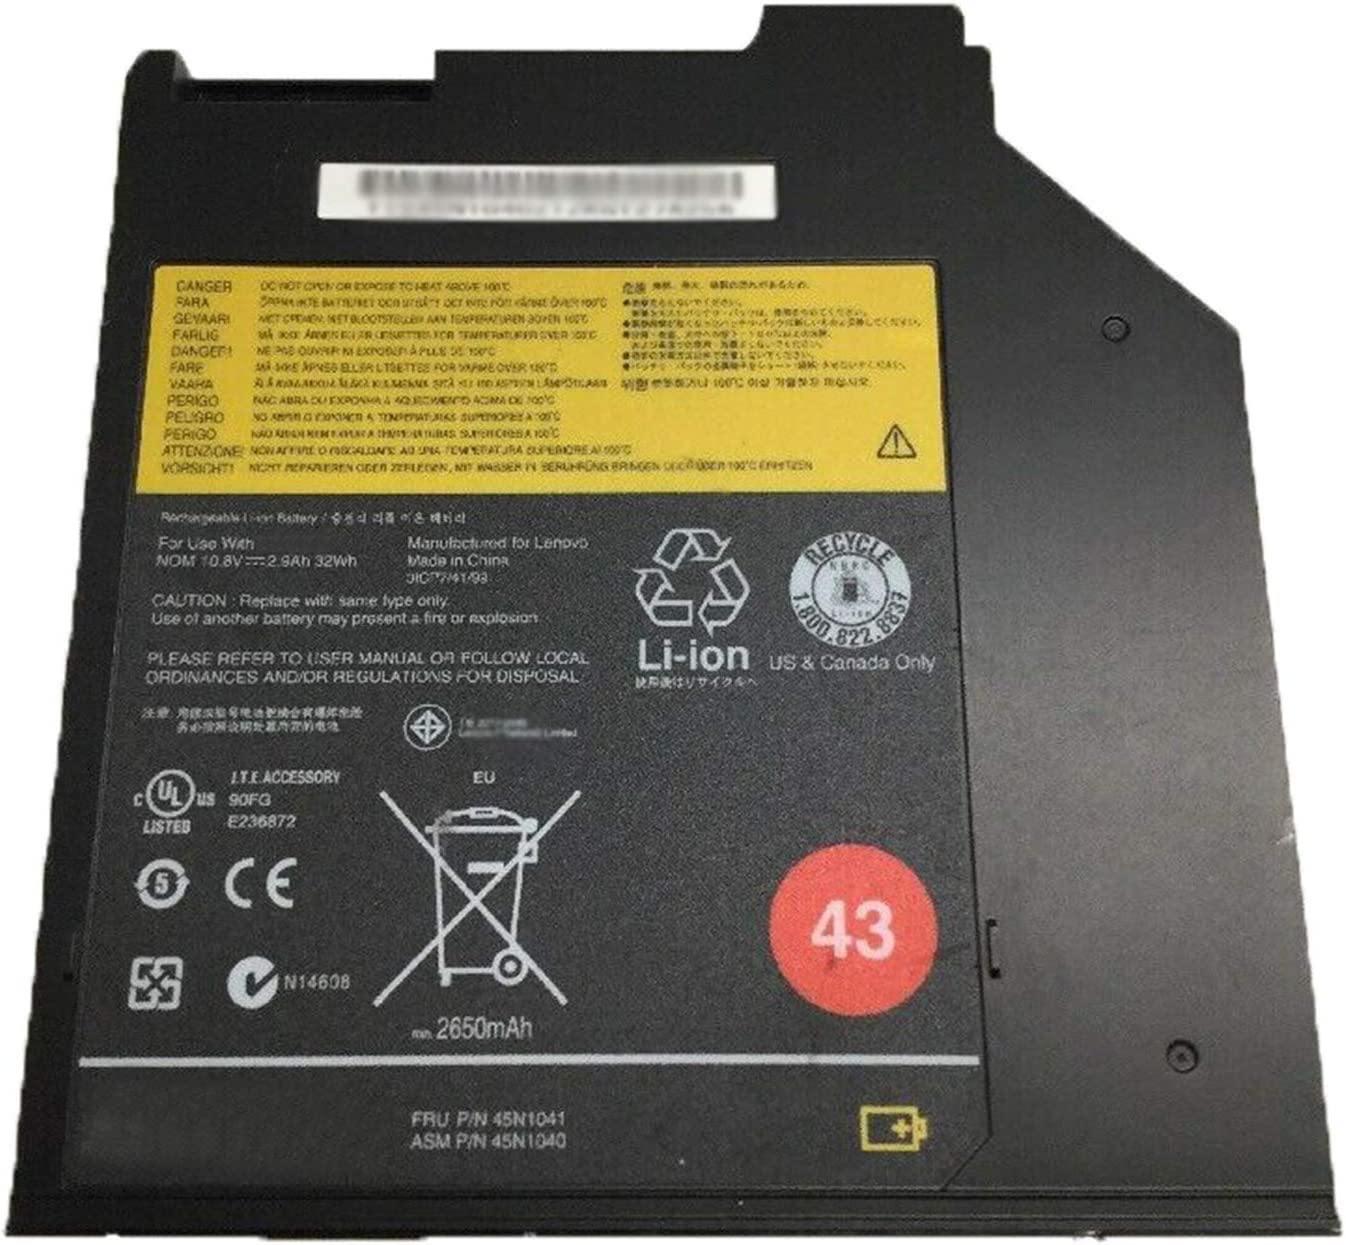 BOWEIRUI 45N1041 (10.8V 32Wh/2650mAh) Laptop Battery Replacement for Lenovo Thinkpad T400S T410S T420S T430S Series Notebook 43 45N1041 0a36310 45N1730